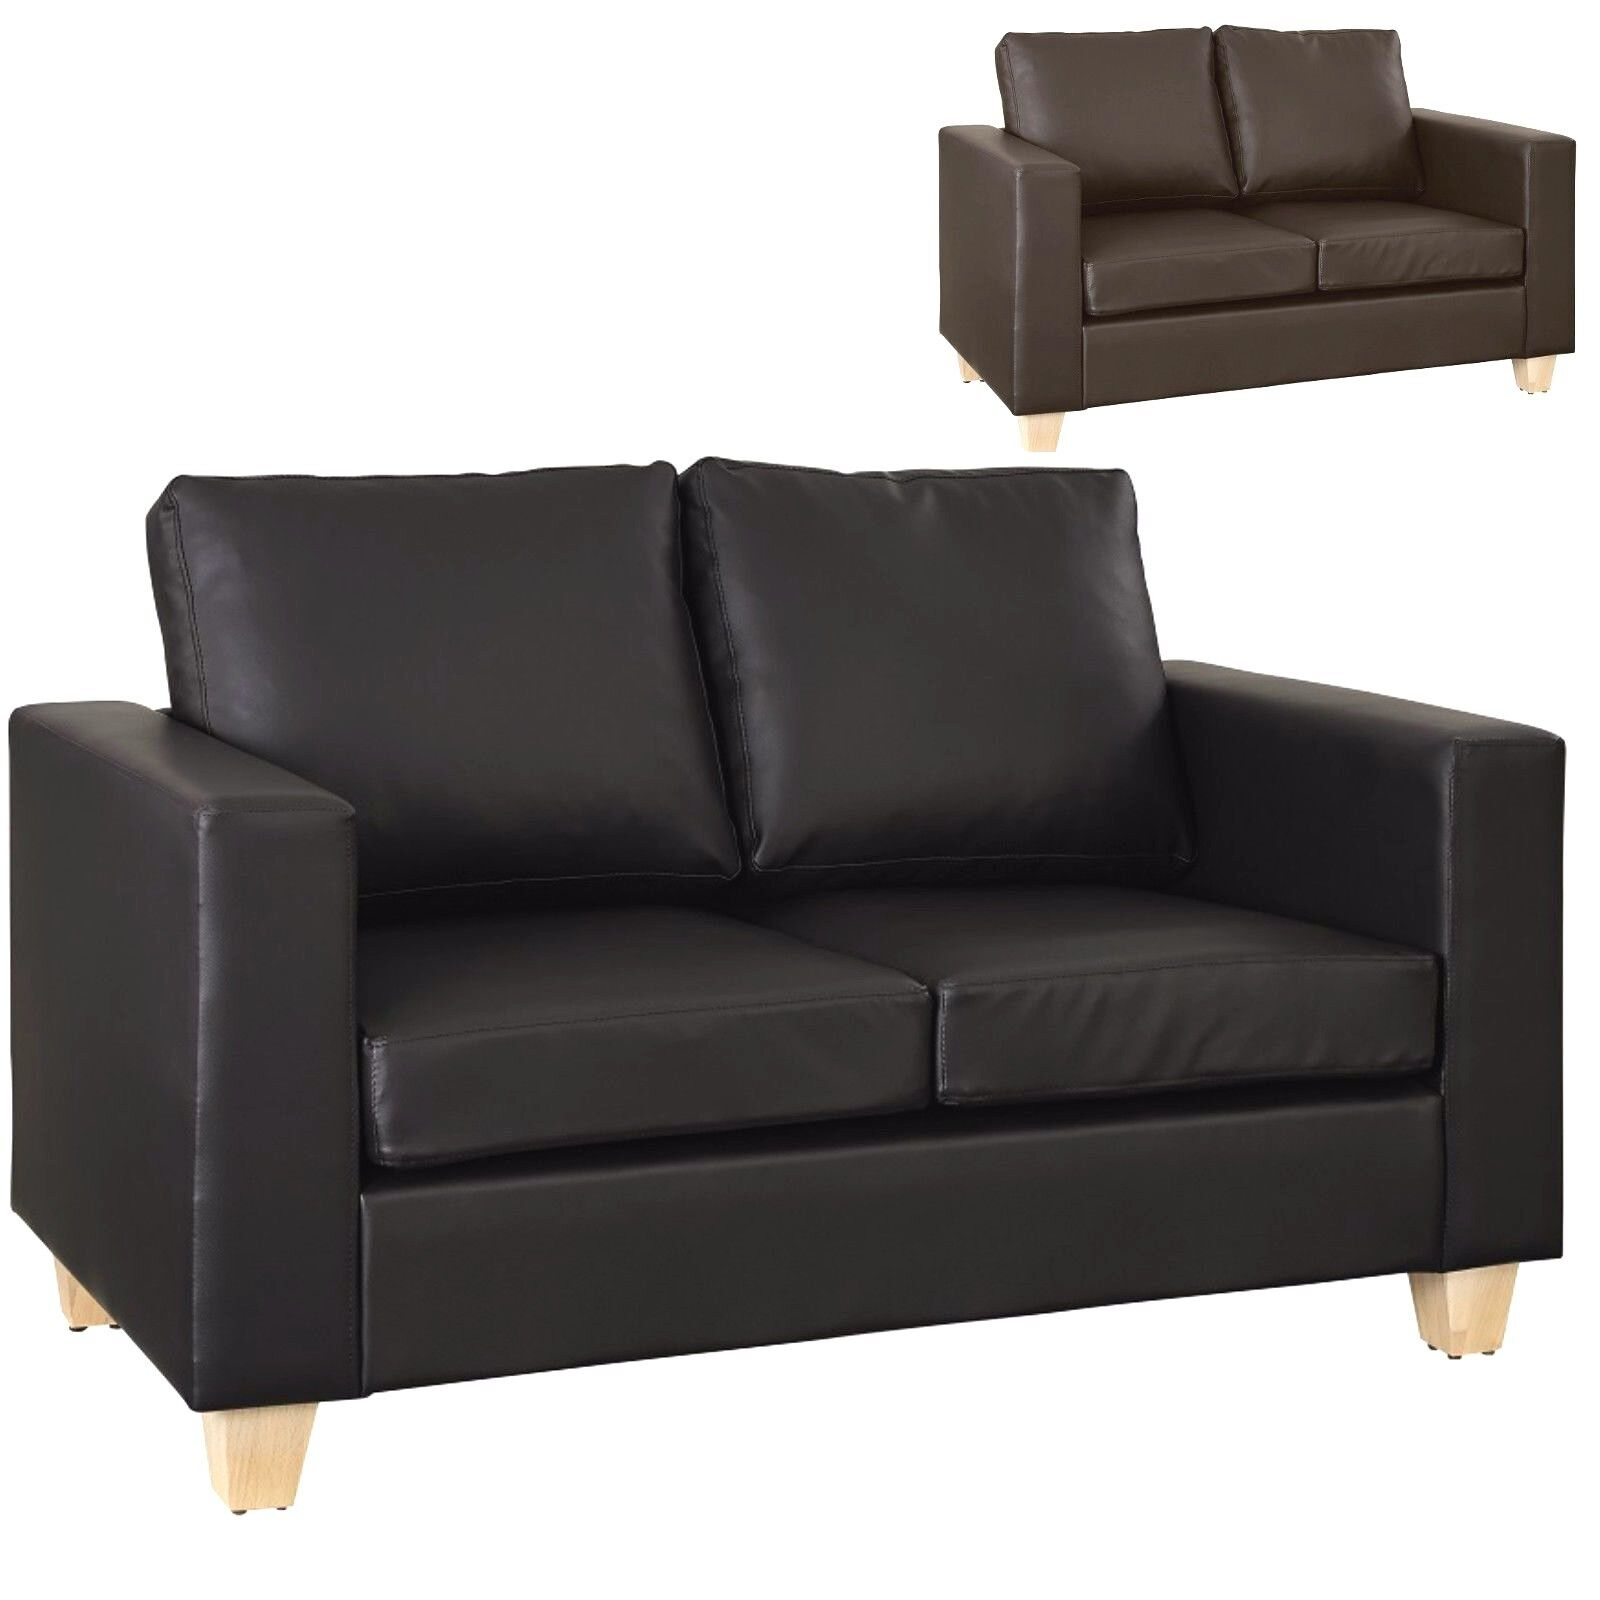 Details about 2 Seater Sofa Black or Brown Faux Leather Modern Design Living Room Office